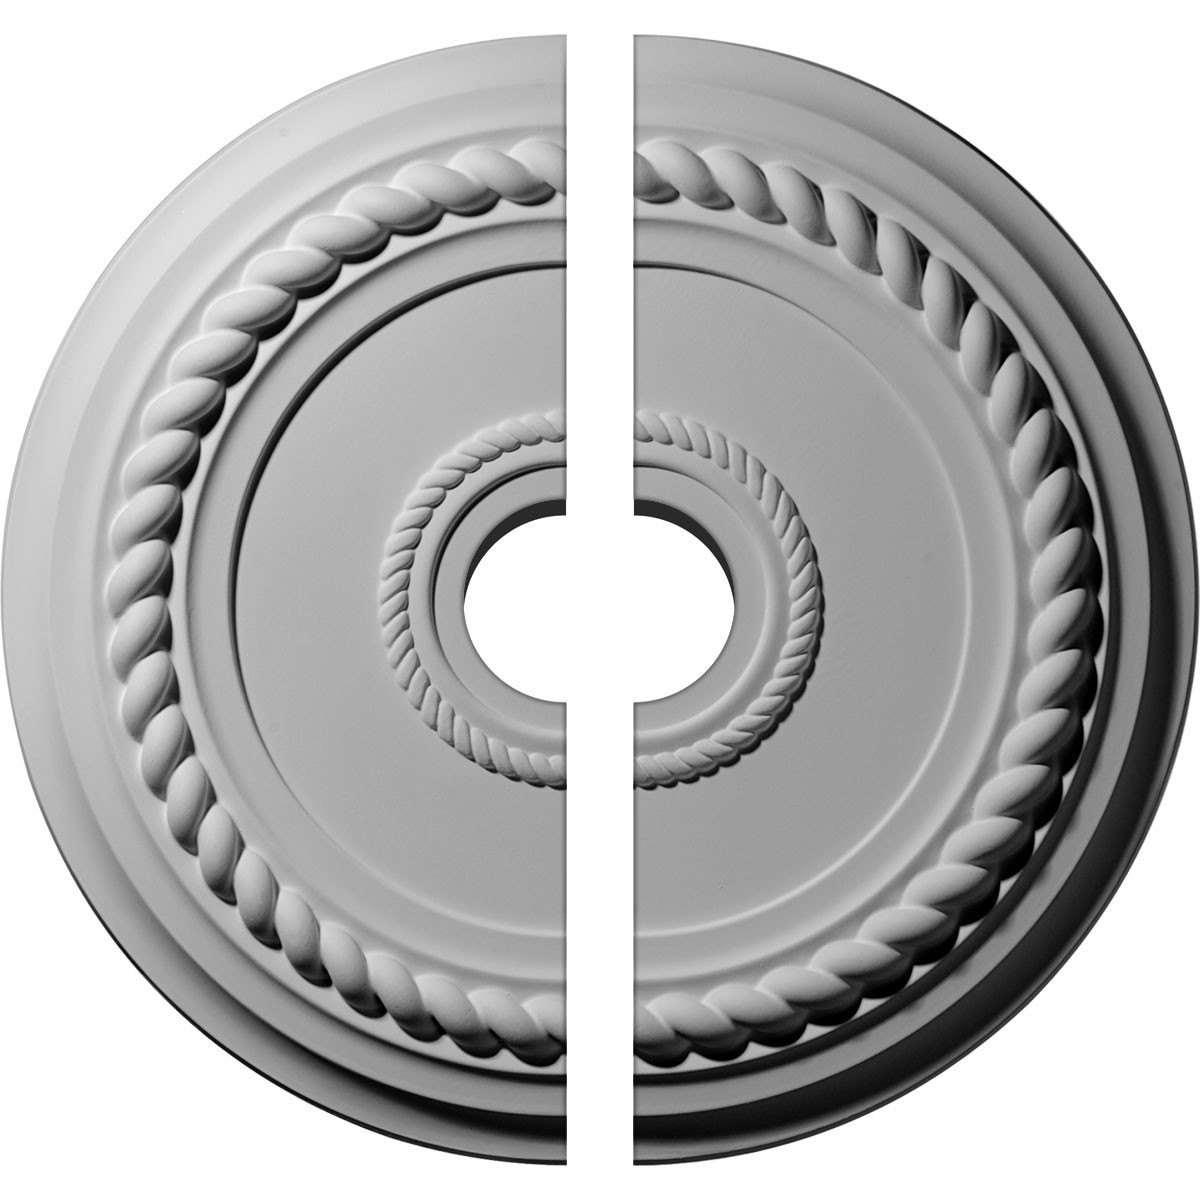 "EM-CM18AL2-03500 - 19 5/8""OD x 3 1/2""ID x 1 1/2""P Alexandria Rope Ceiling Medallion, Two Piece (Fits Canopies up to 4 5/8"")"